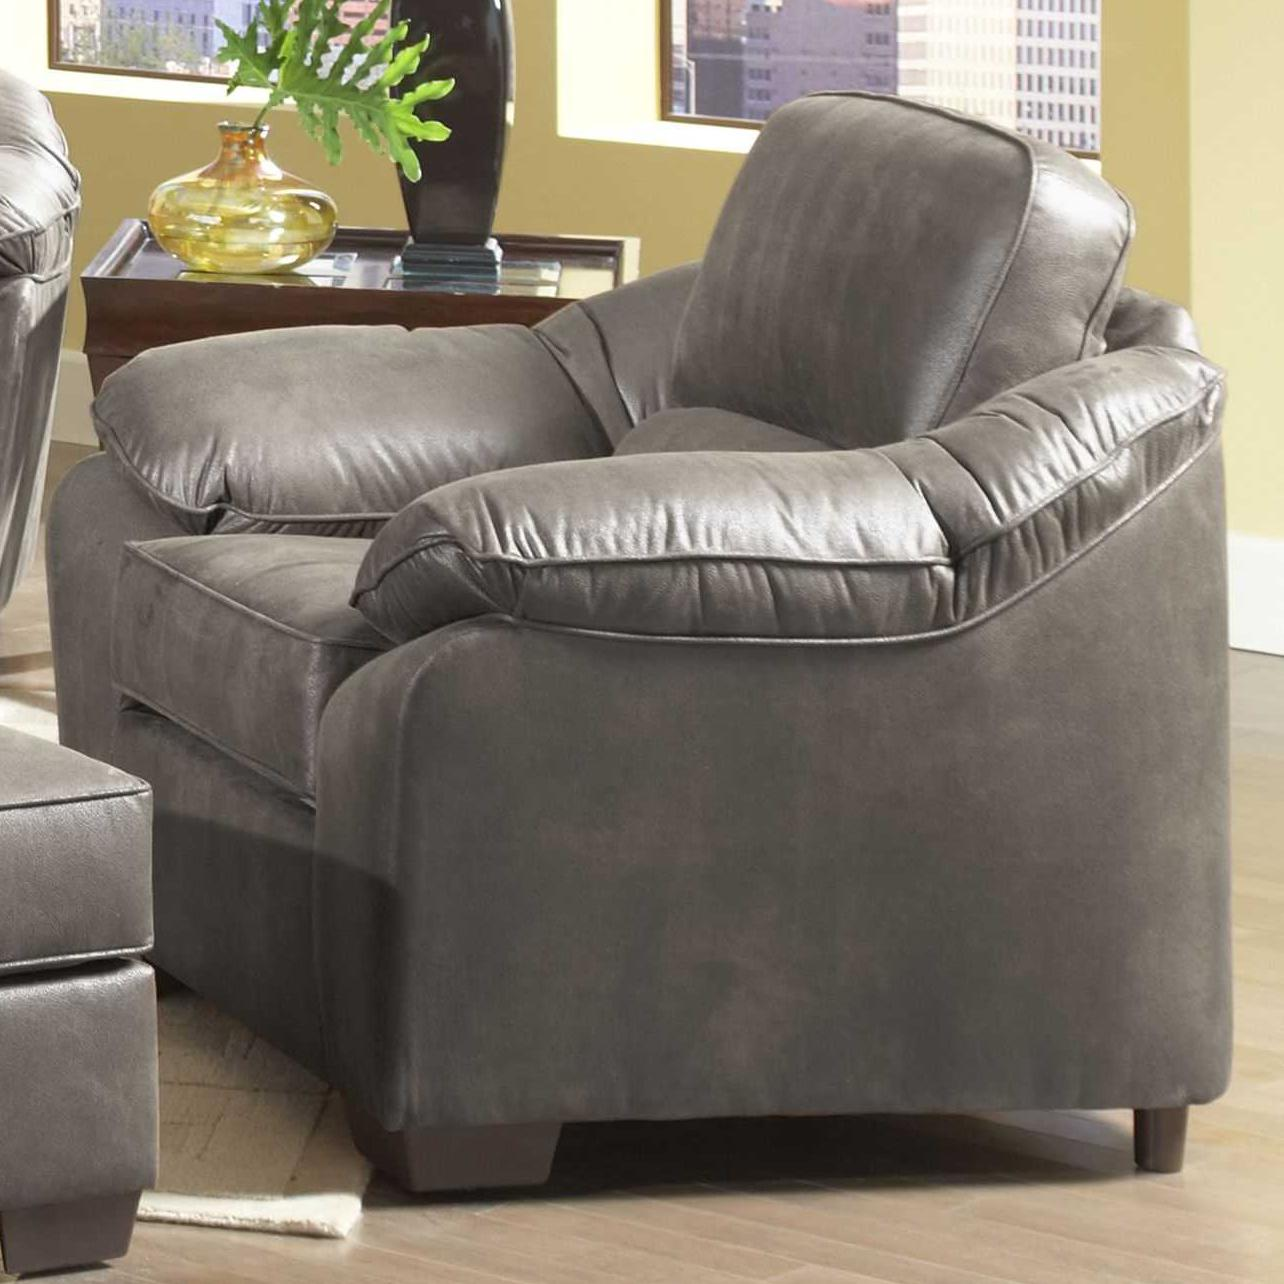 Serta Upholstery 3800 Accent Chair - Item Number: 3800 C